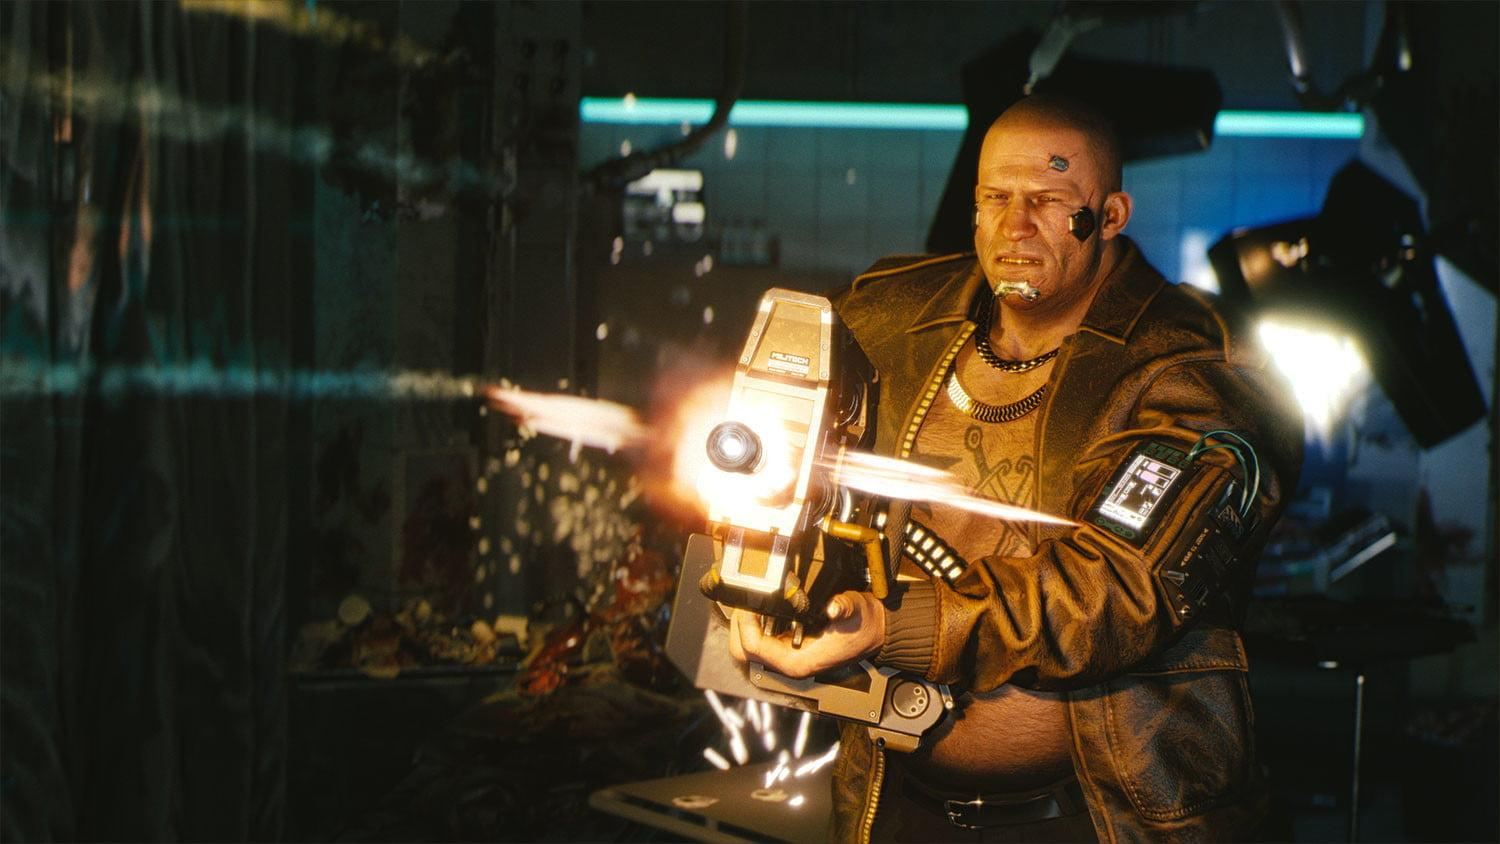 Cyberpunk 2077' E3 build used a hefty PC, but can your